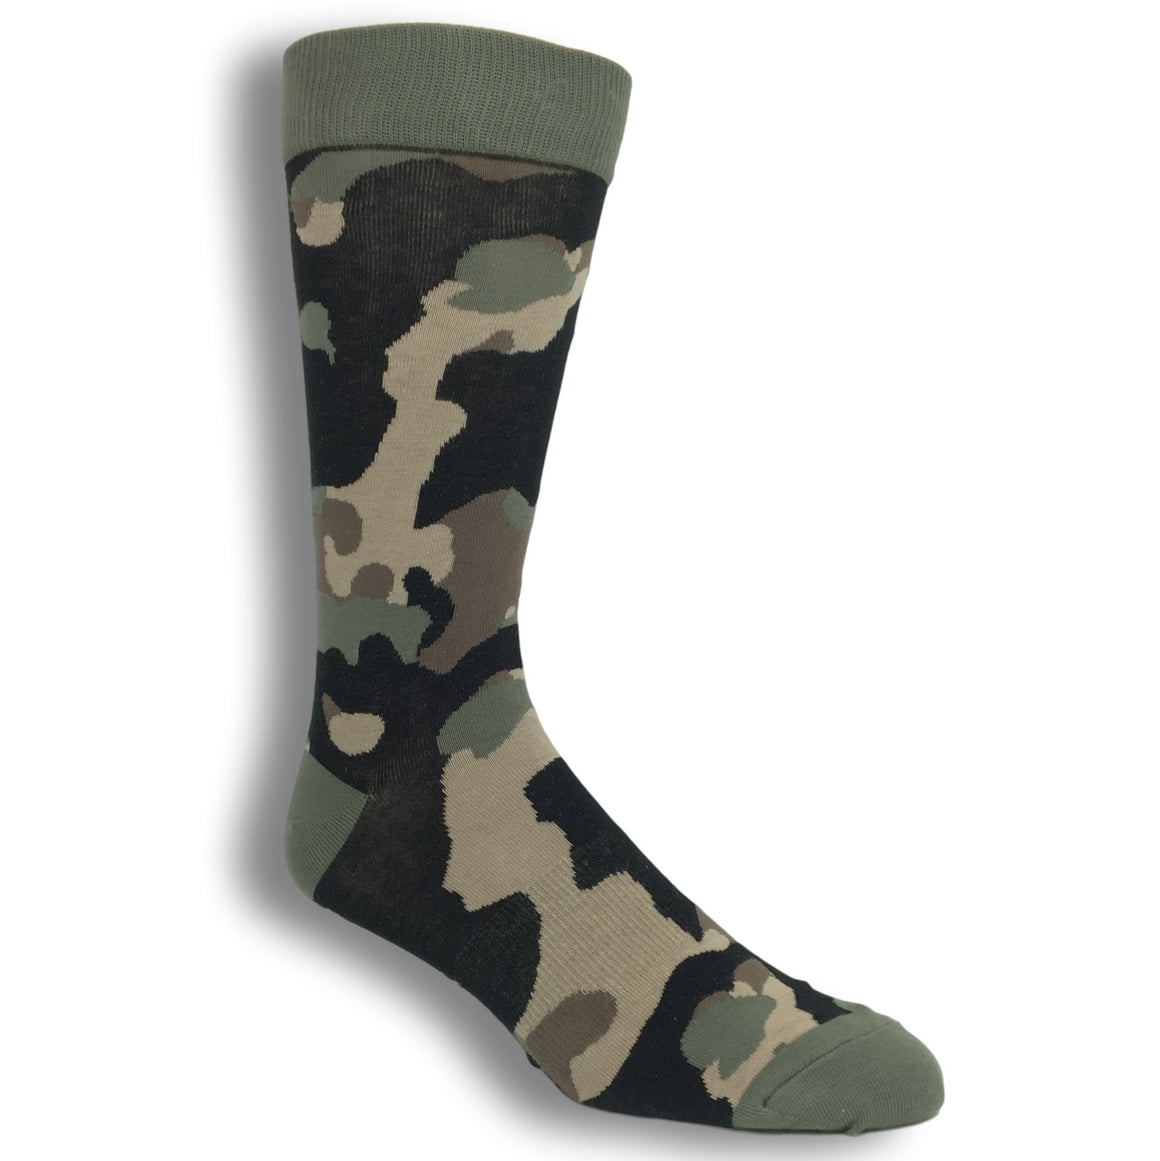 Camouflage Socks by K.Bell - The Sock Spot